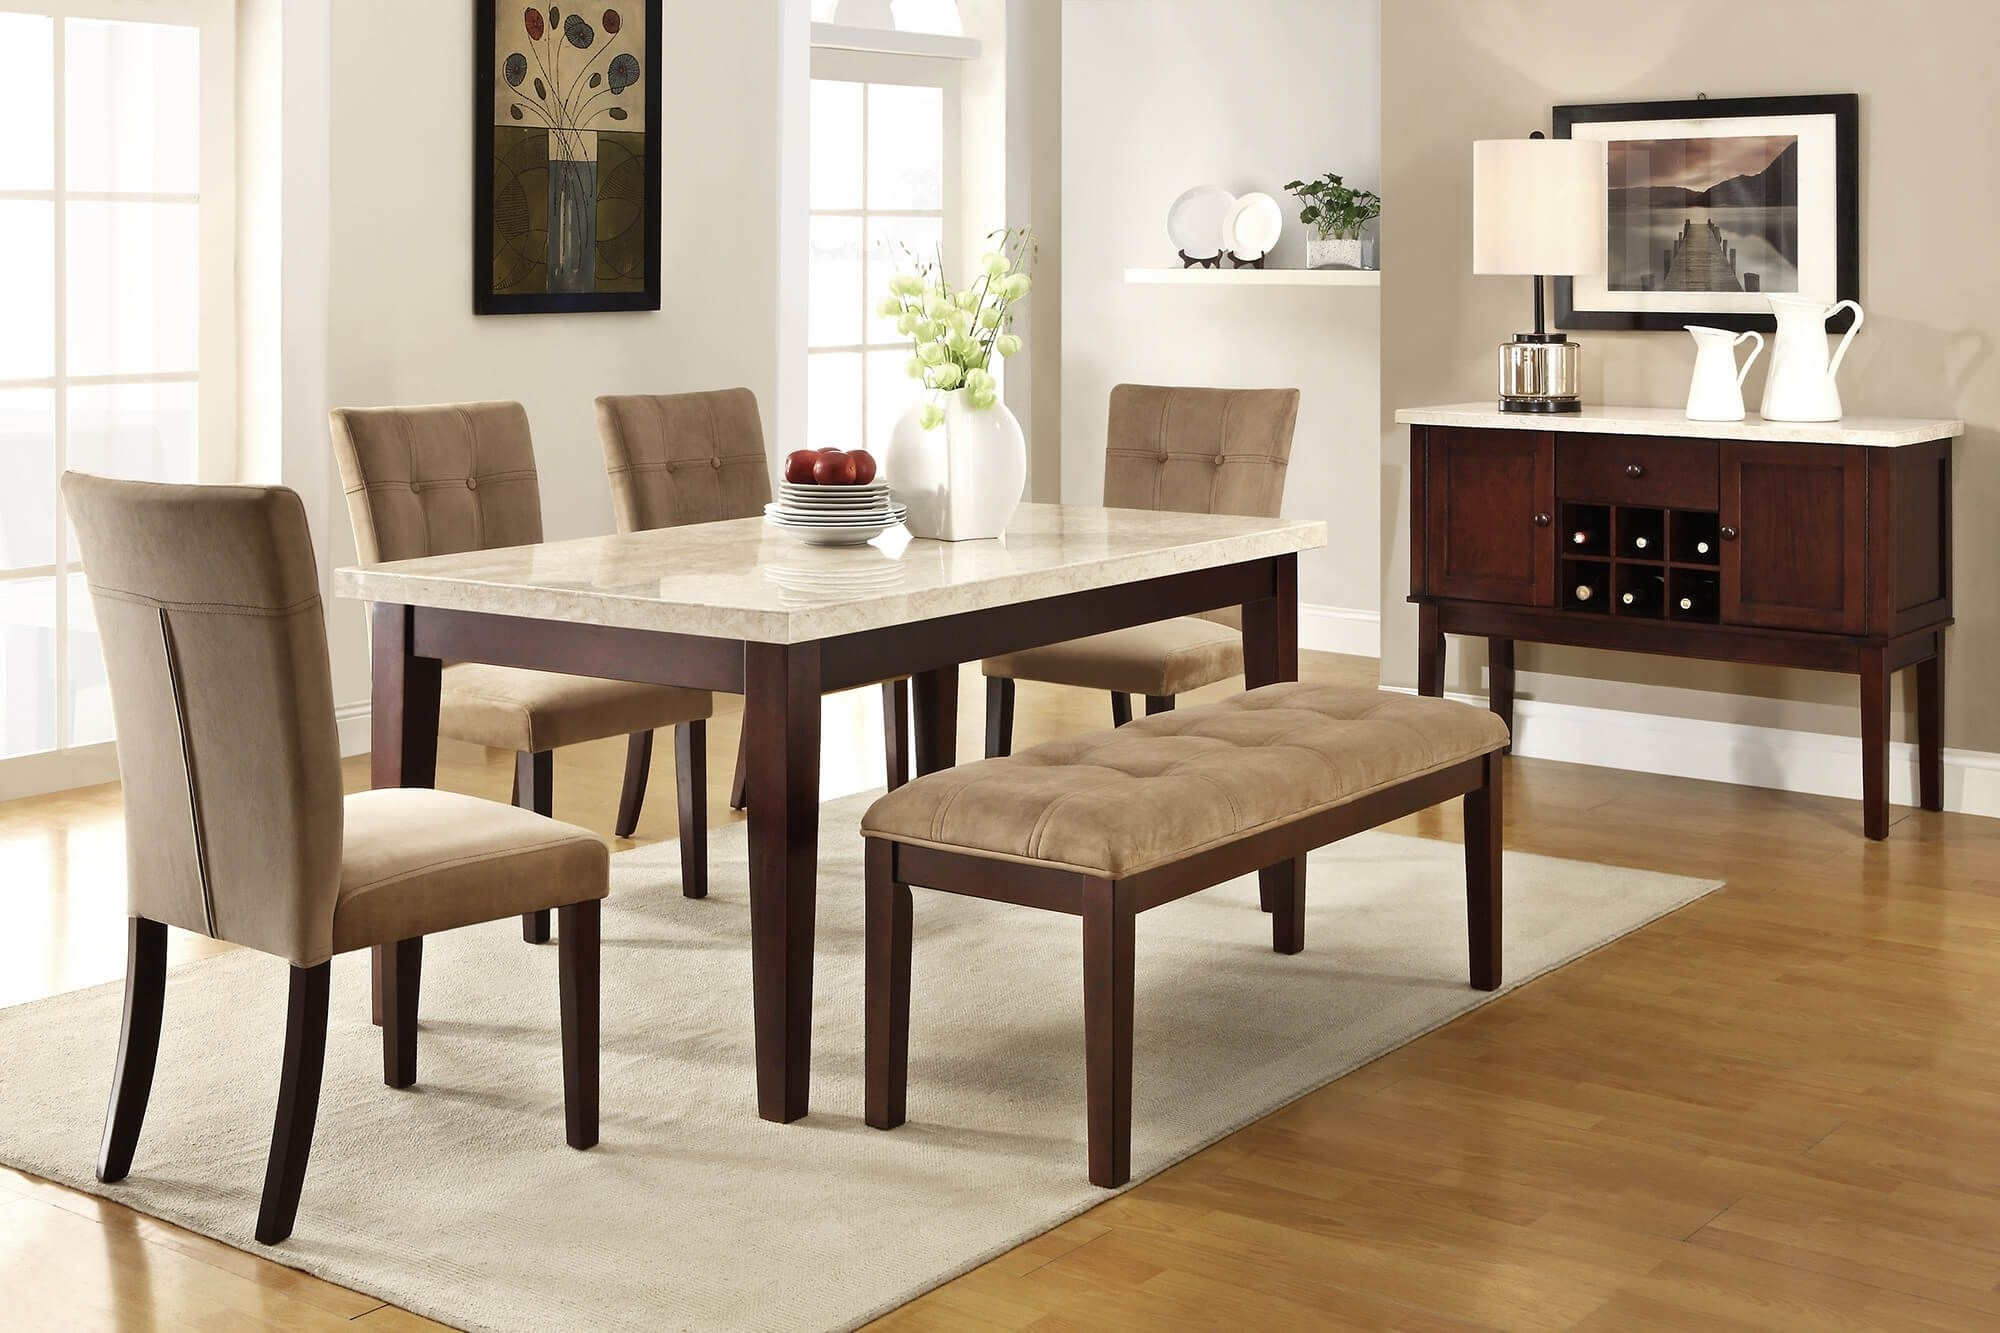 26 Dining Room Sets (Big And Small) With Bench Seating (2018) | Home In Most Up To Date Palazzo 7 Piece Dining Sets With Pearson White Side Chairs (View 8 of 20)